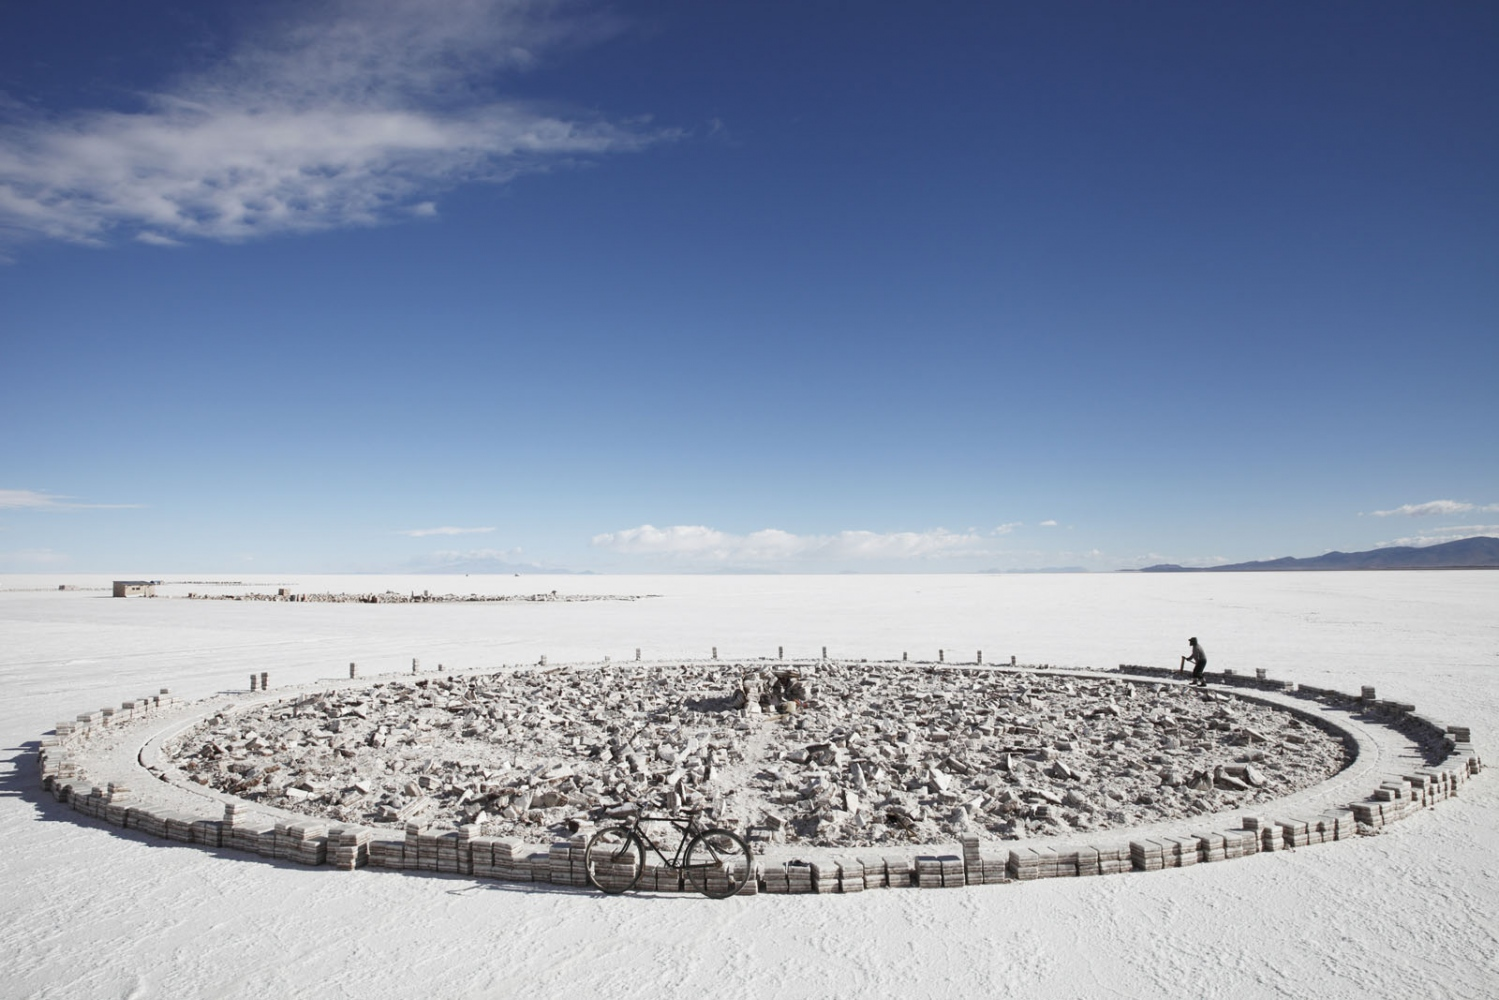 A salt maker cuts salt blocks directly from the world's largest salt deposit in a circular formation. The Salar de Uyuni in Bolivia is the world's largest salt deposit.